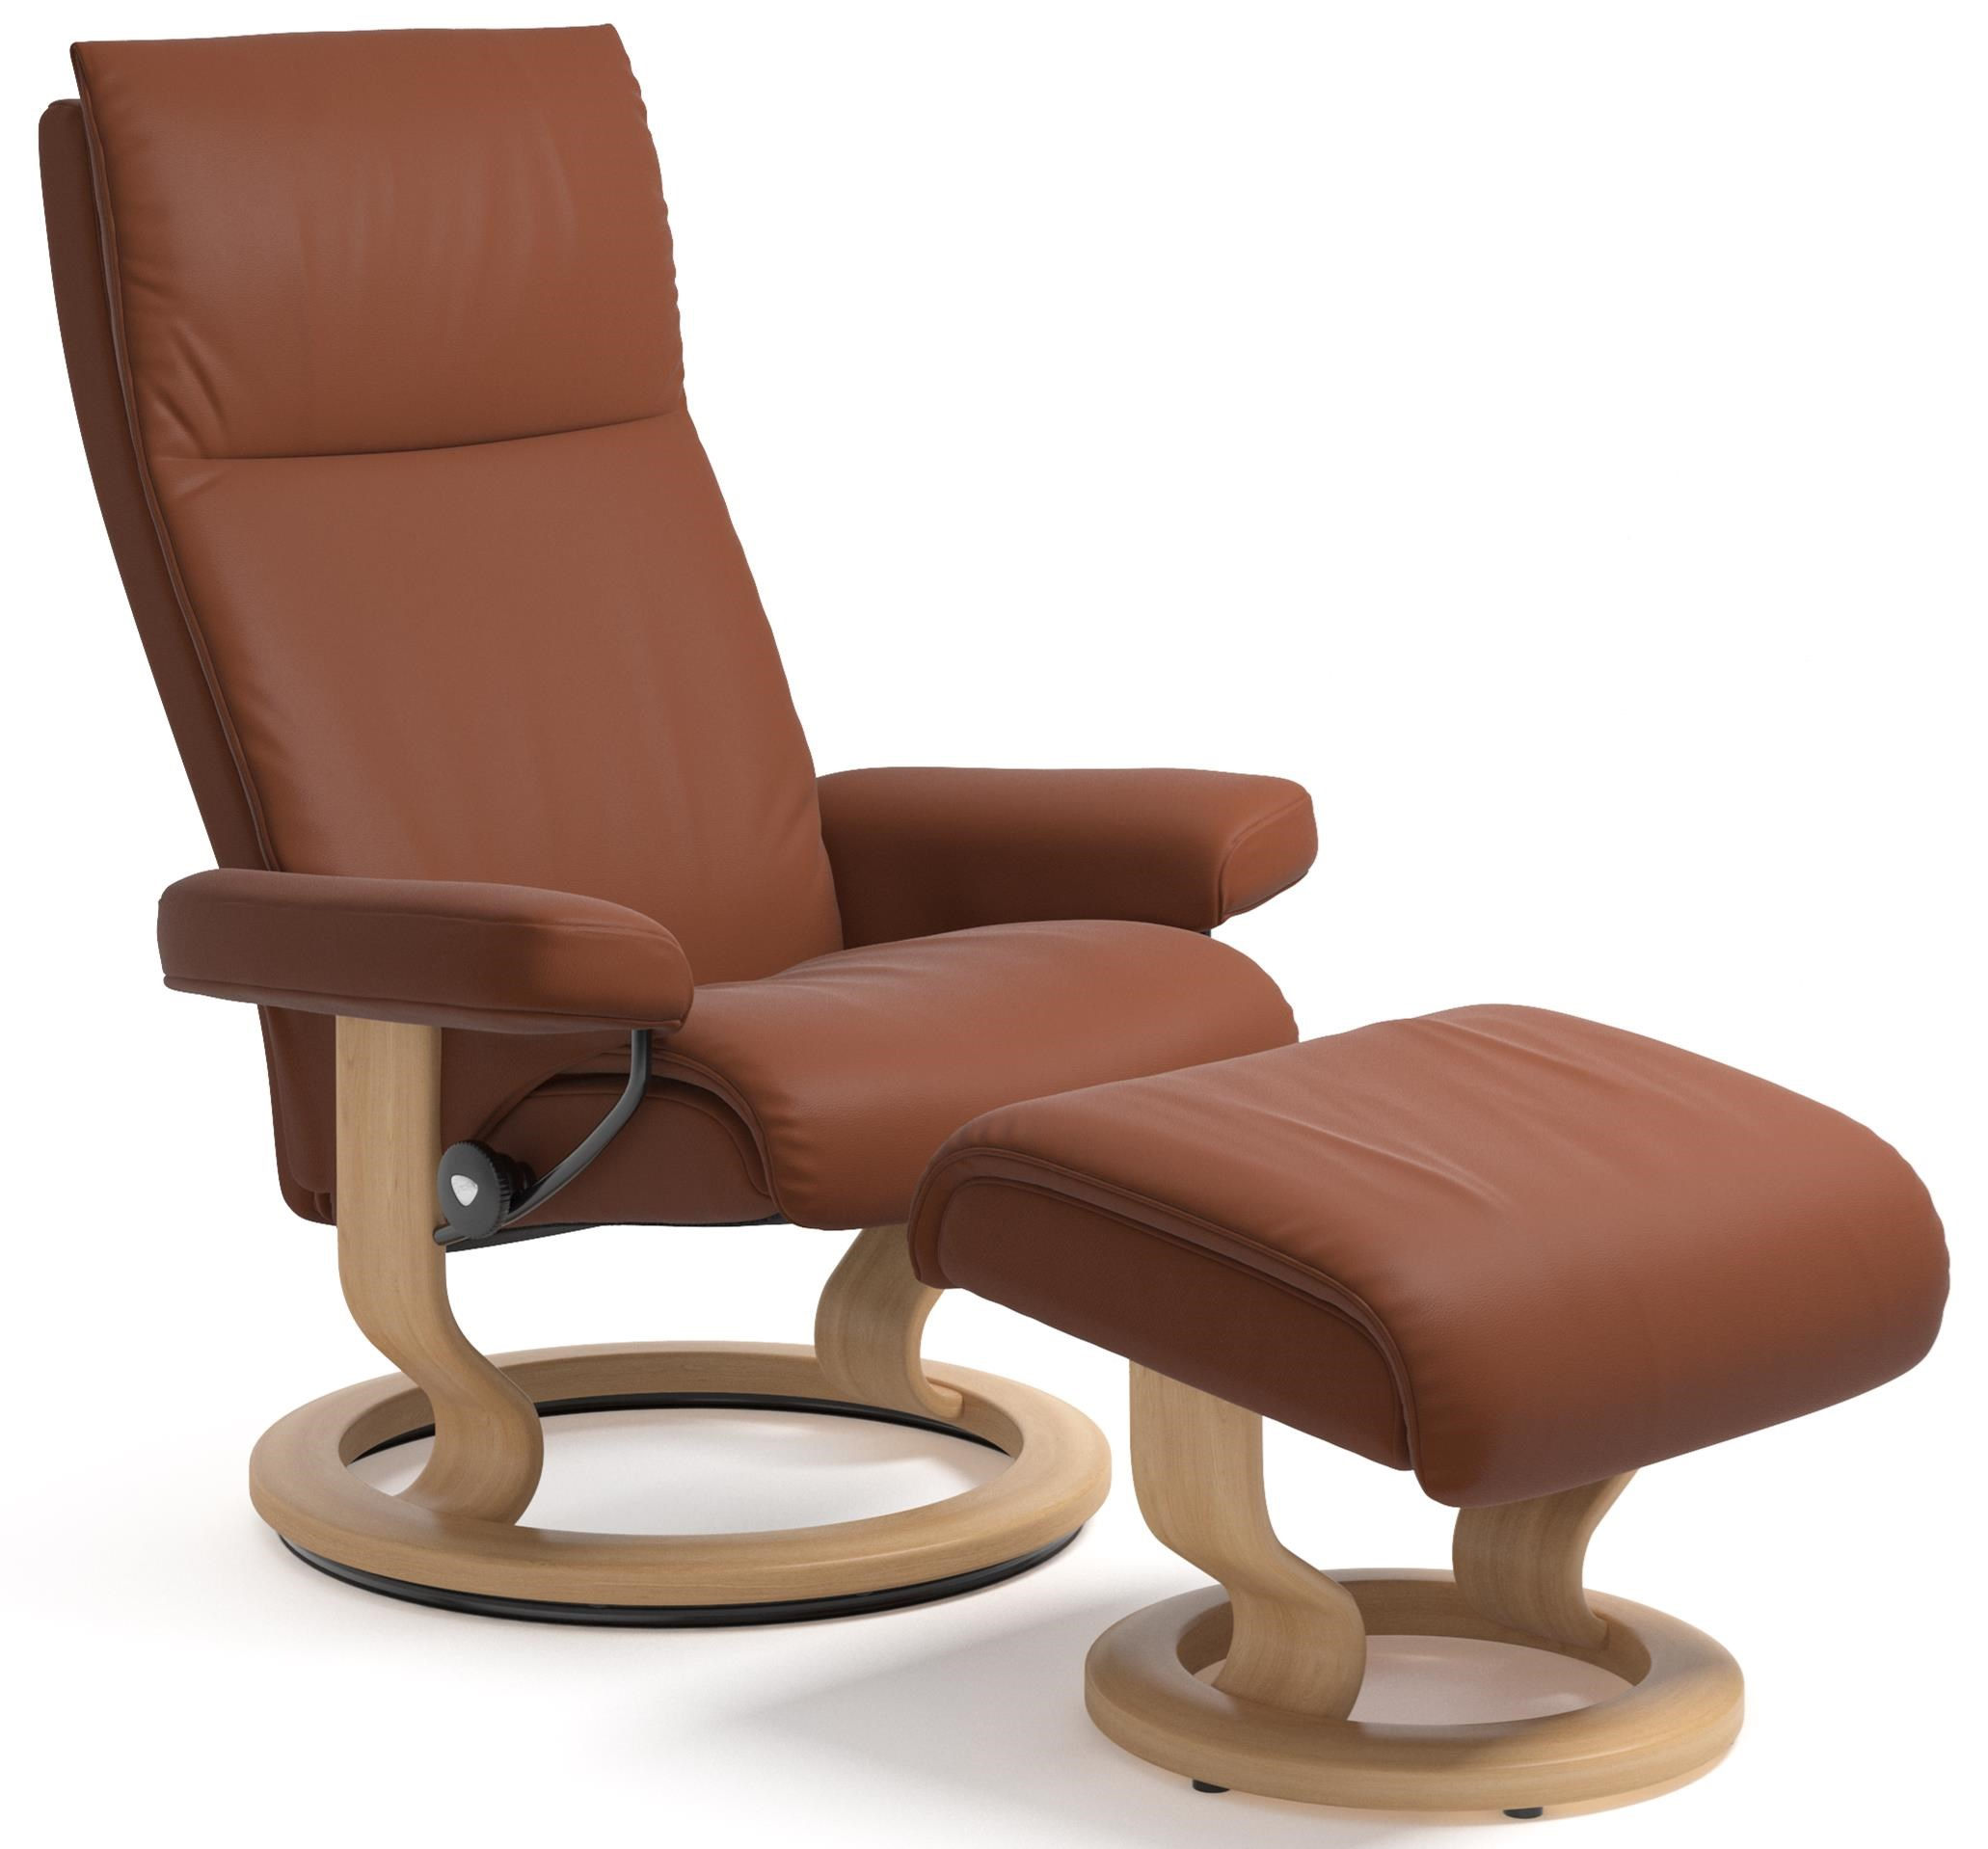 Aura Small Reclining Chair and Ottoman by Stressless at Jordan's Home Furnishings